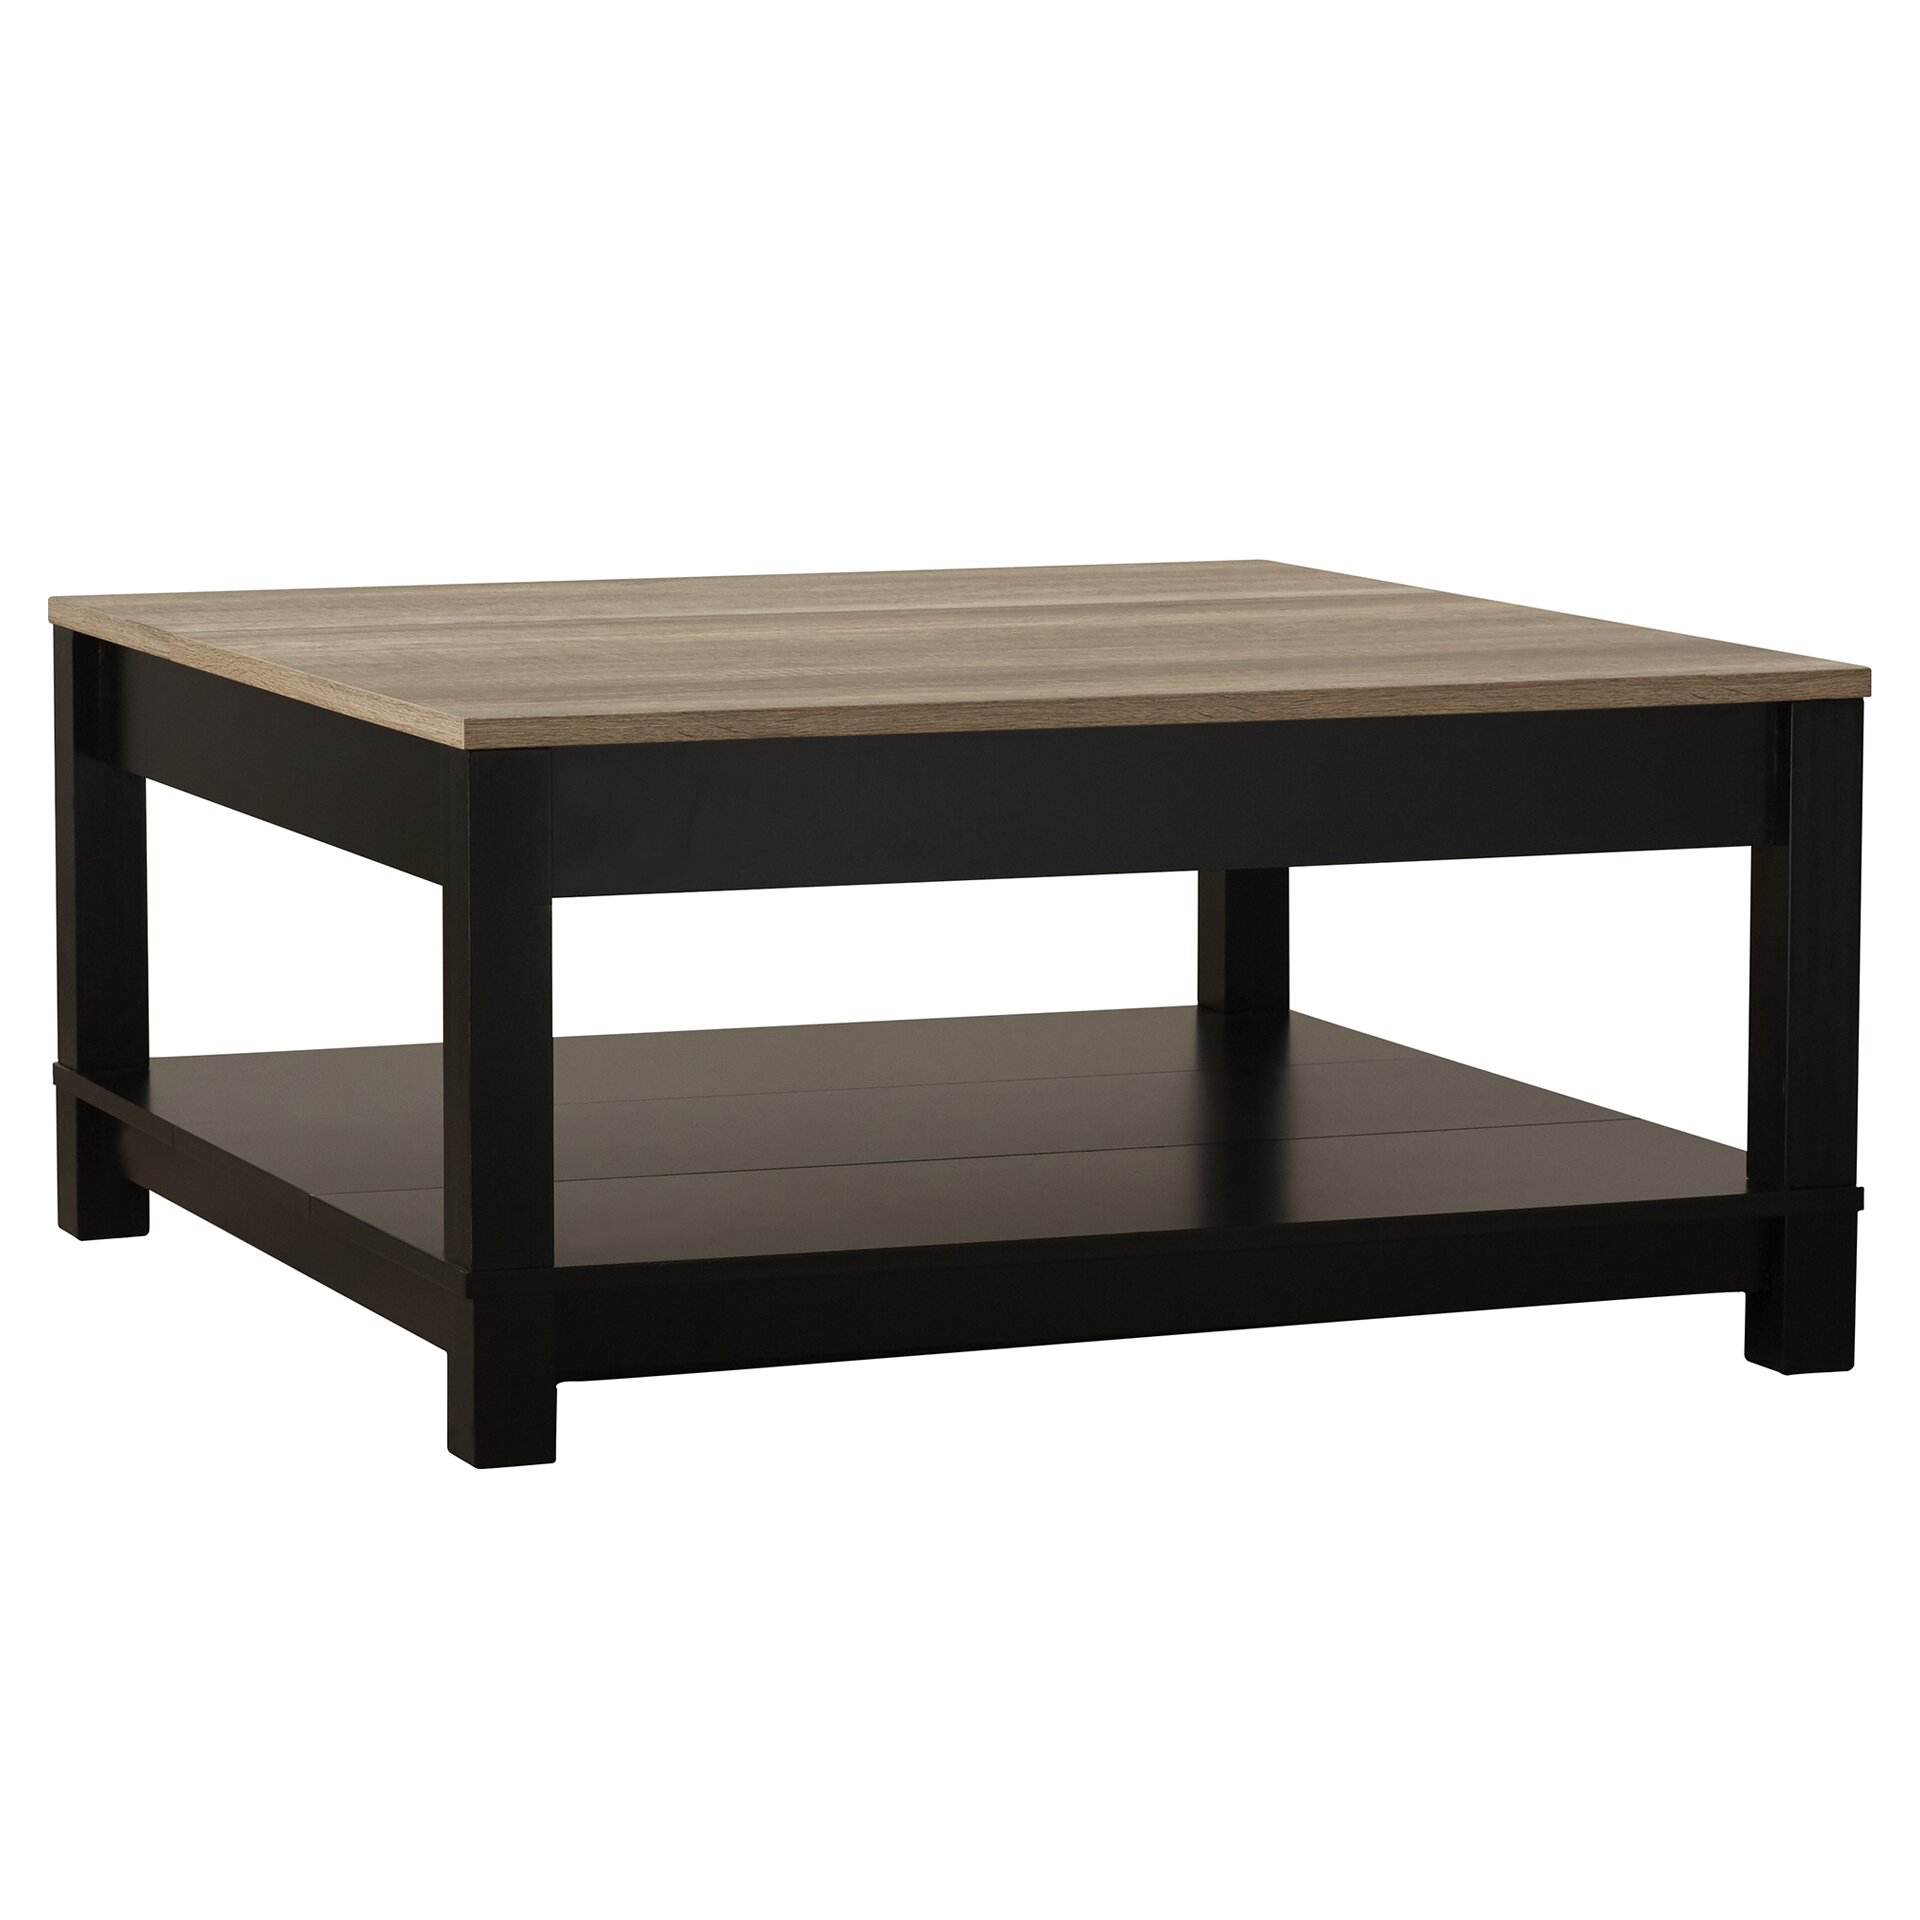 Mercury row callowhill coffee table reviews wayfair for Html table row